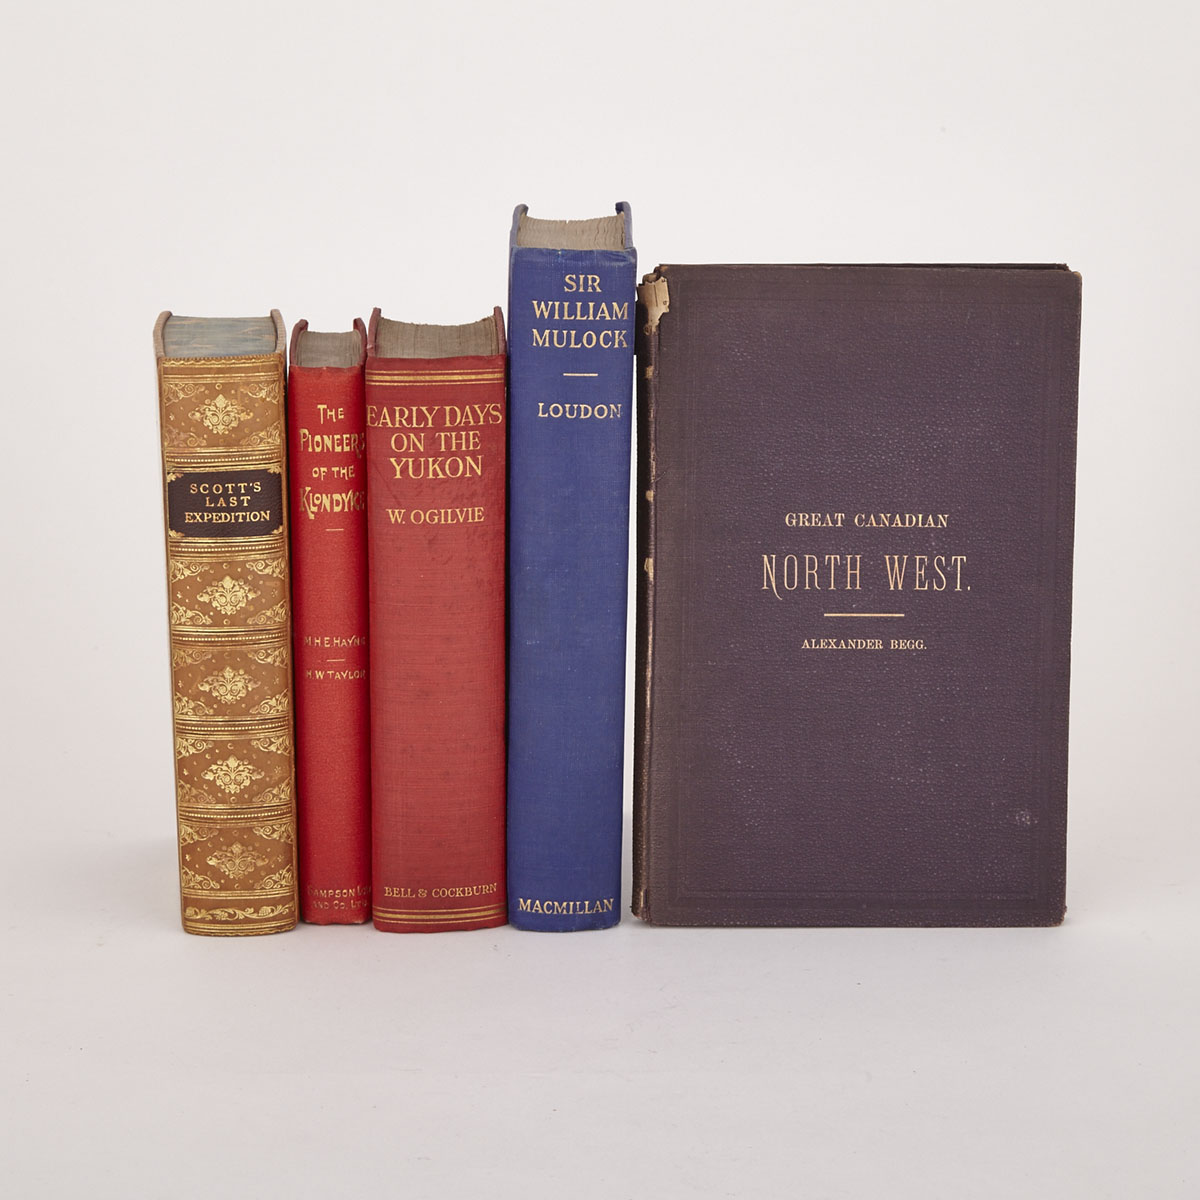 [Books-Canadian History] Five Volumes on Canadian History including William Mulock Autograph, 19th and early 20th centuries